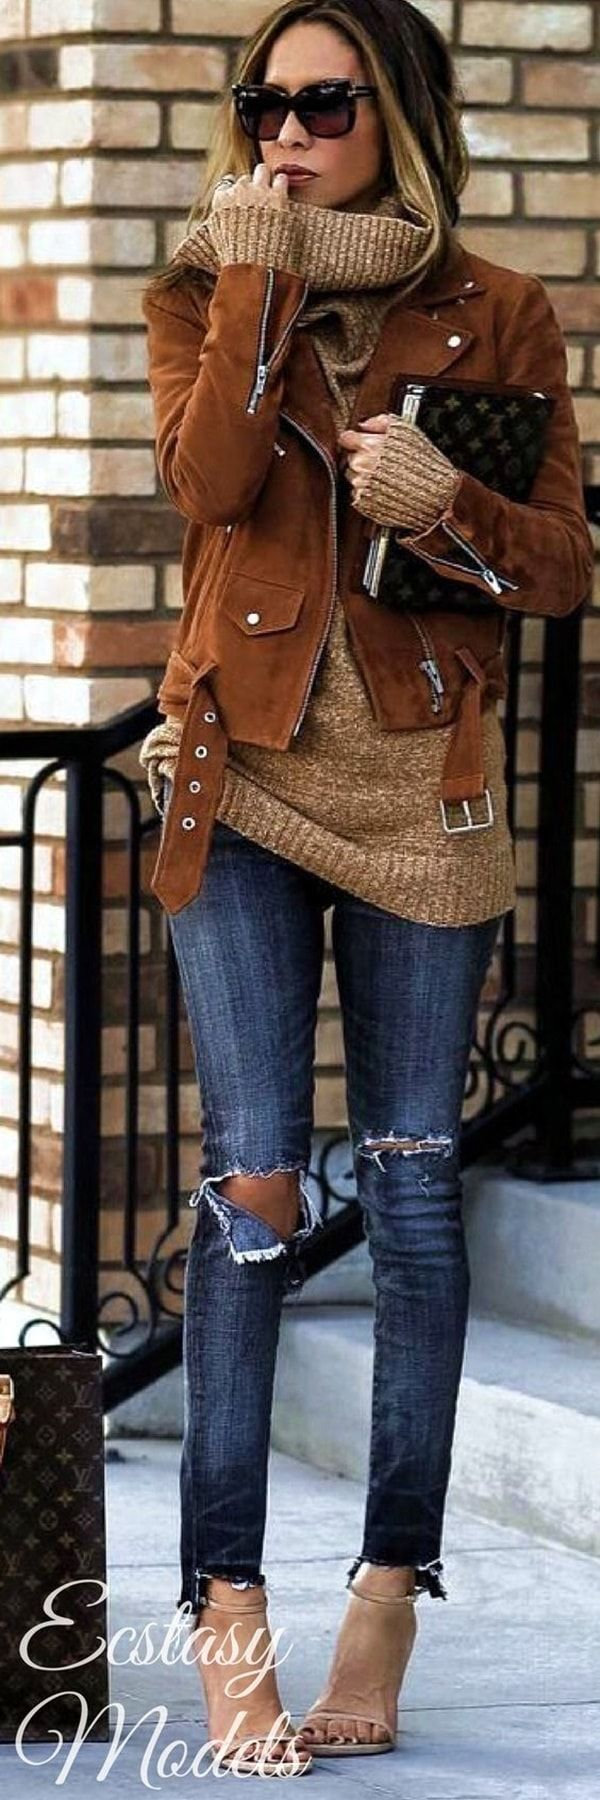 falls-outfits-you-have-been-waiting-to-wear-19